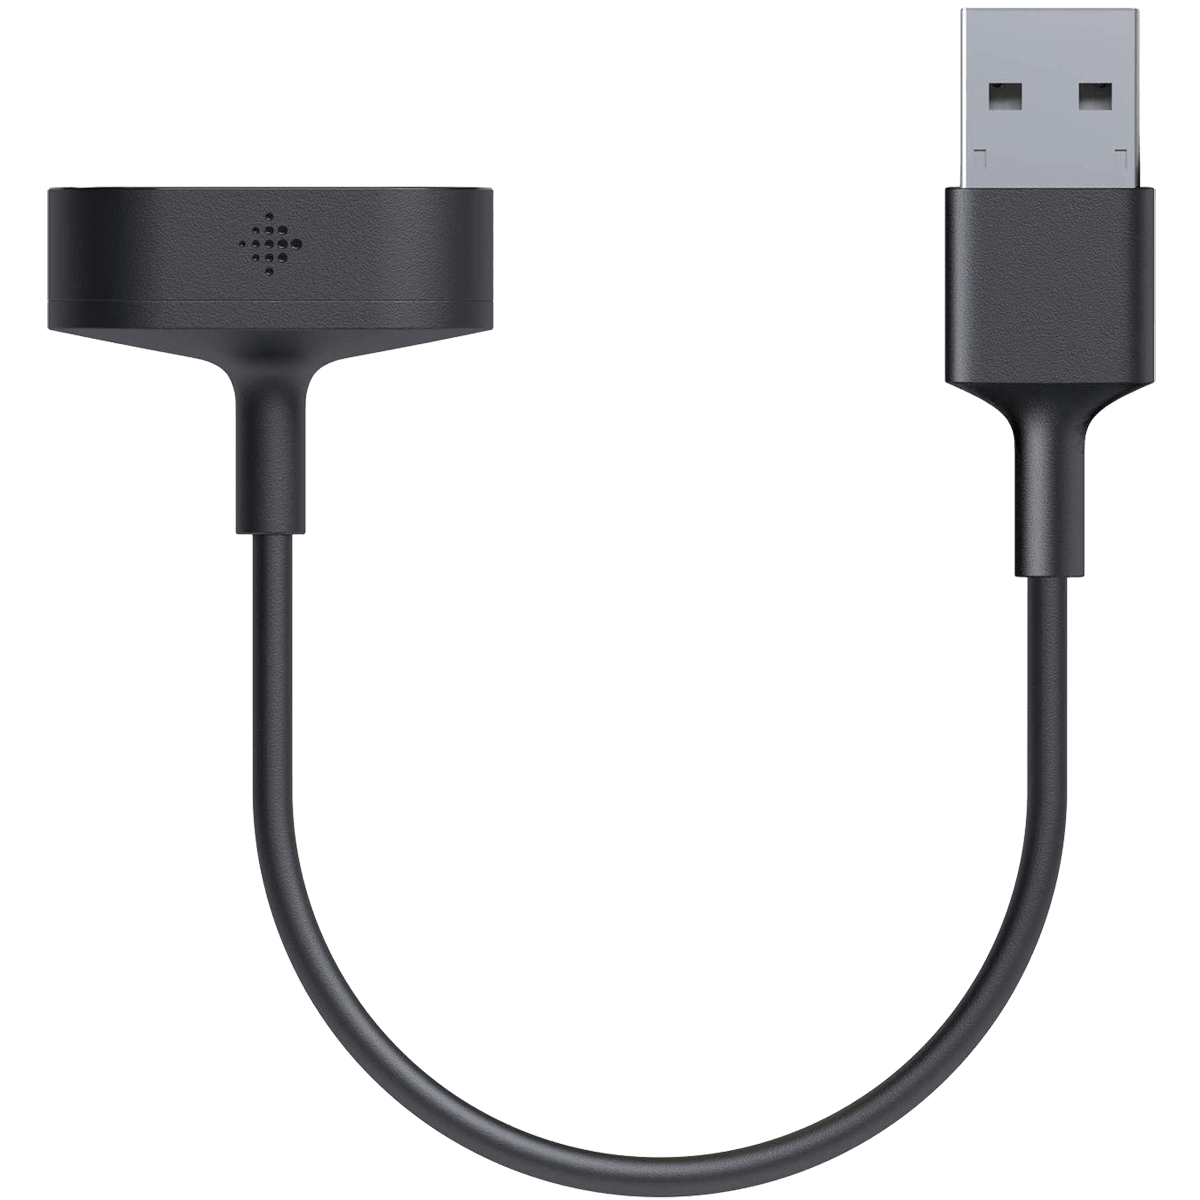 Fitbit Inspire USB 2.0 (Type-A) Charging Cable (FB169RCC, Black)_1